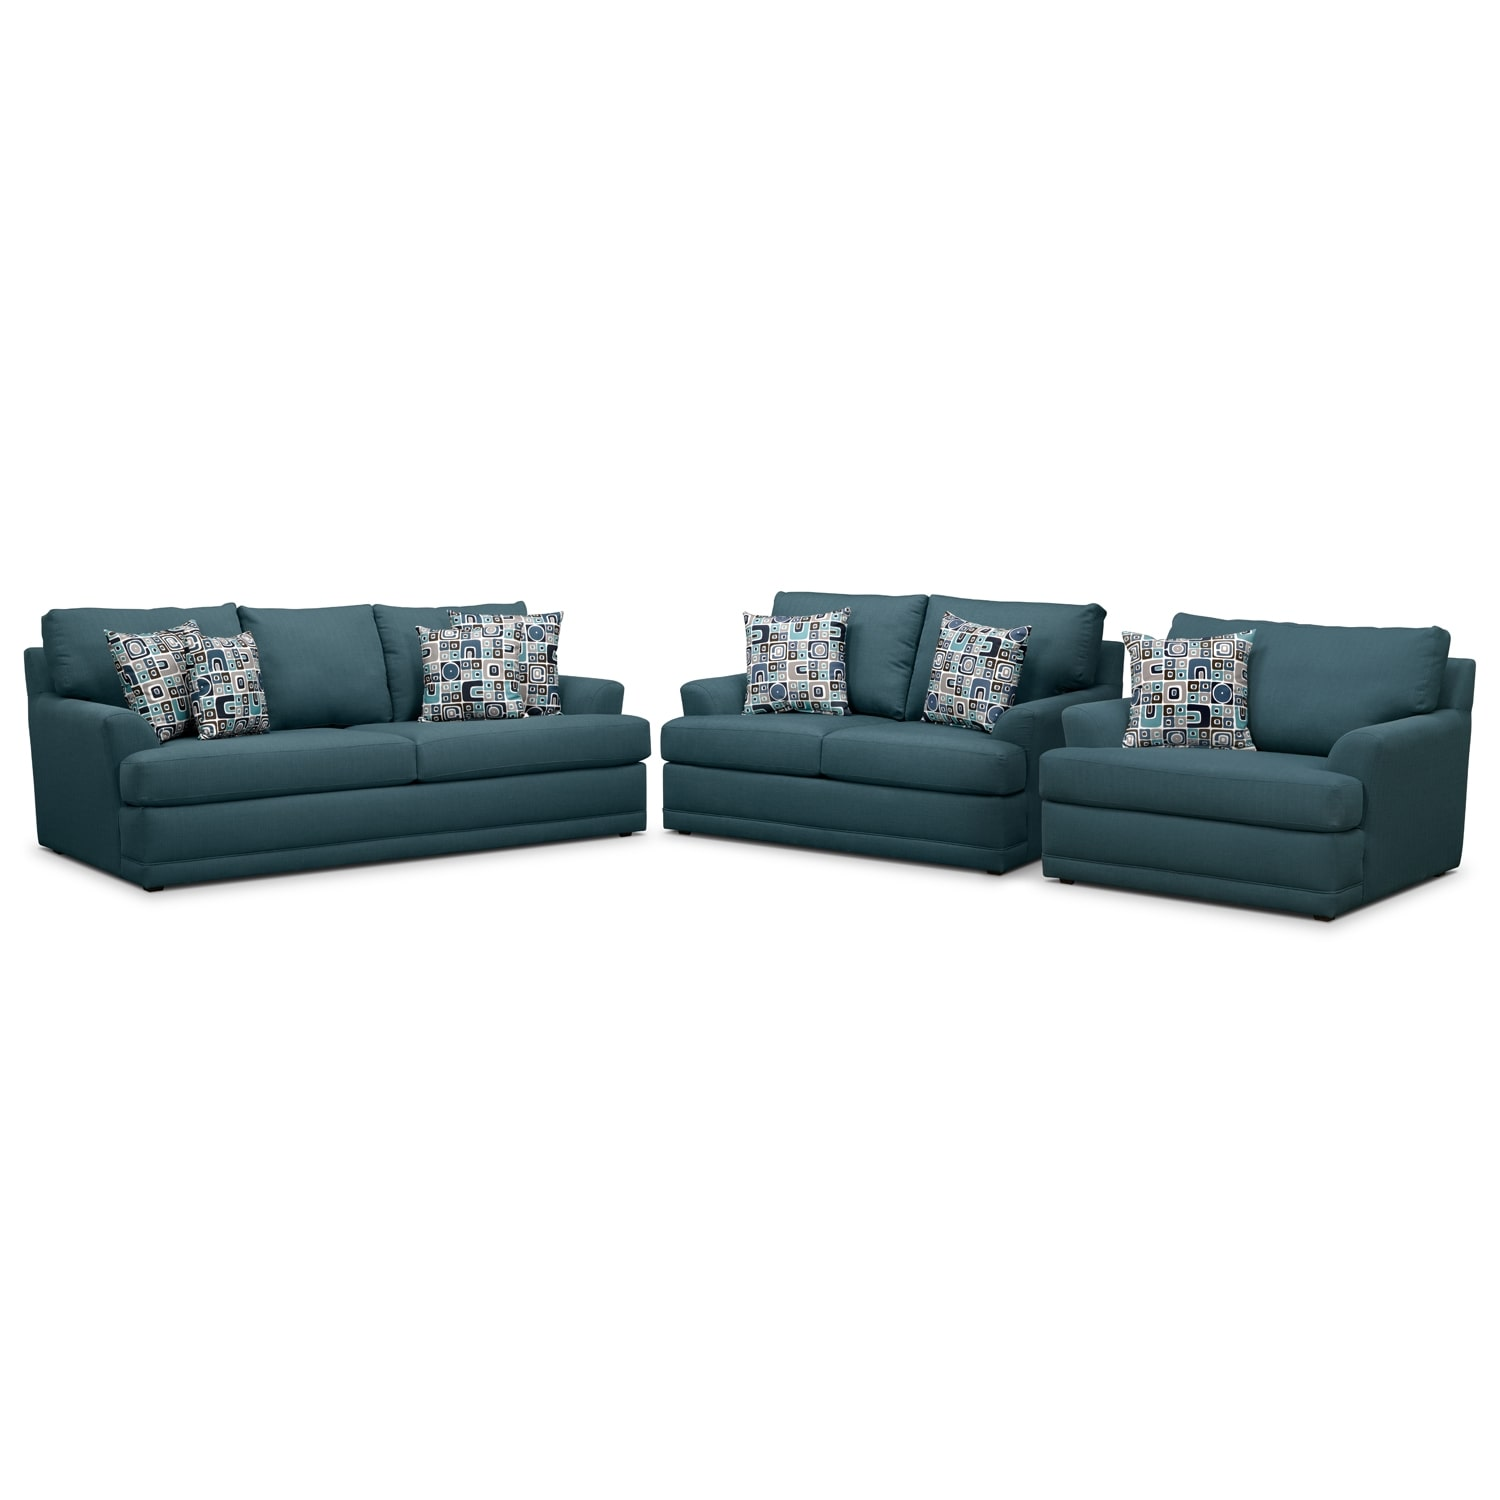 Living Room Furniture - Kismet 3 Pc. Sleeper Living Room with Chair and a Half and Innerspring Mattress - Teal